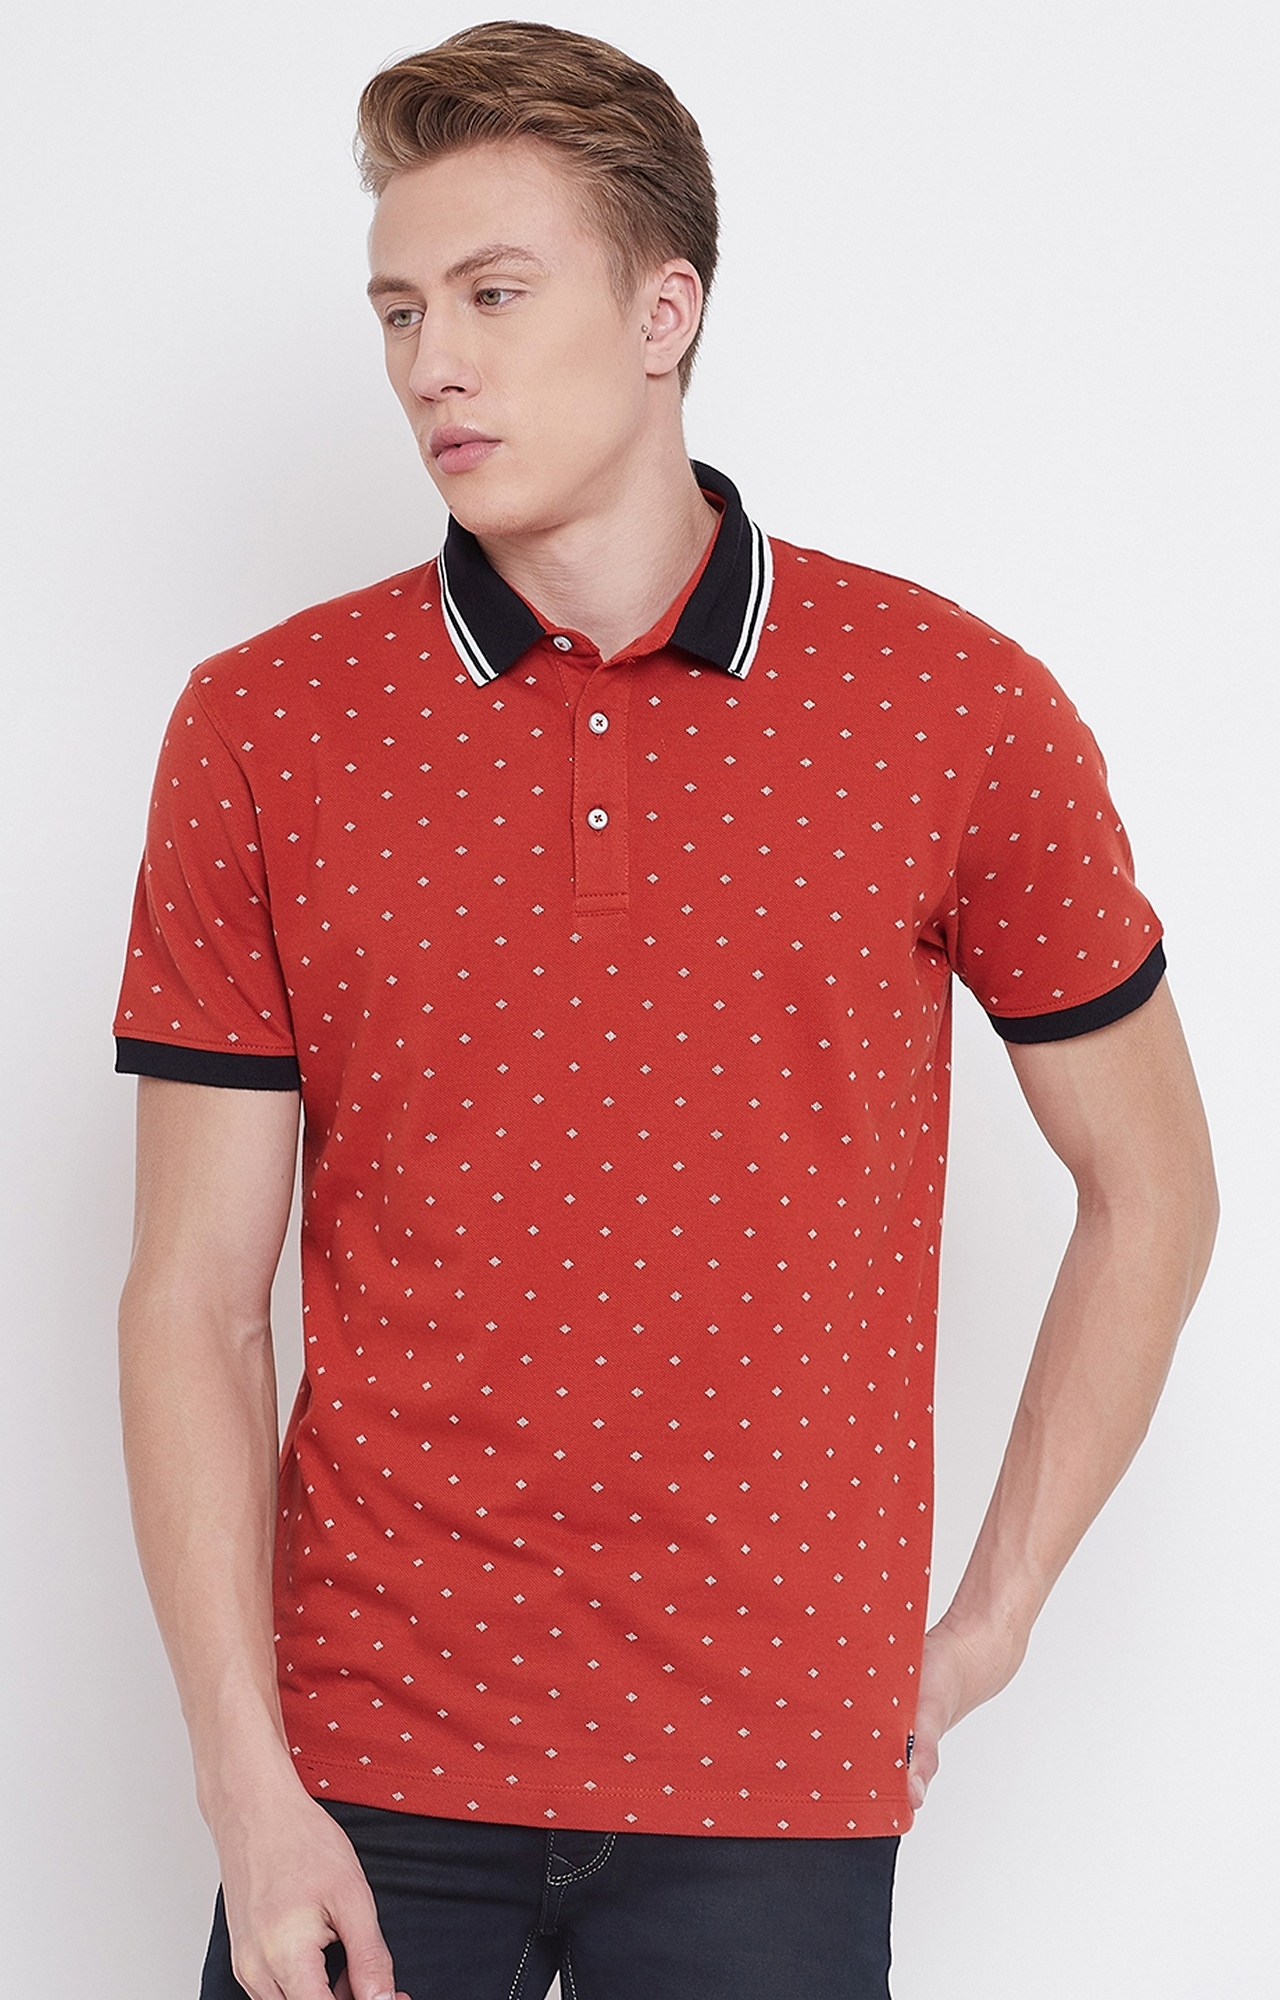 OCTAVE   Rust Printed Polo T-Shirt